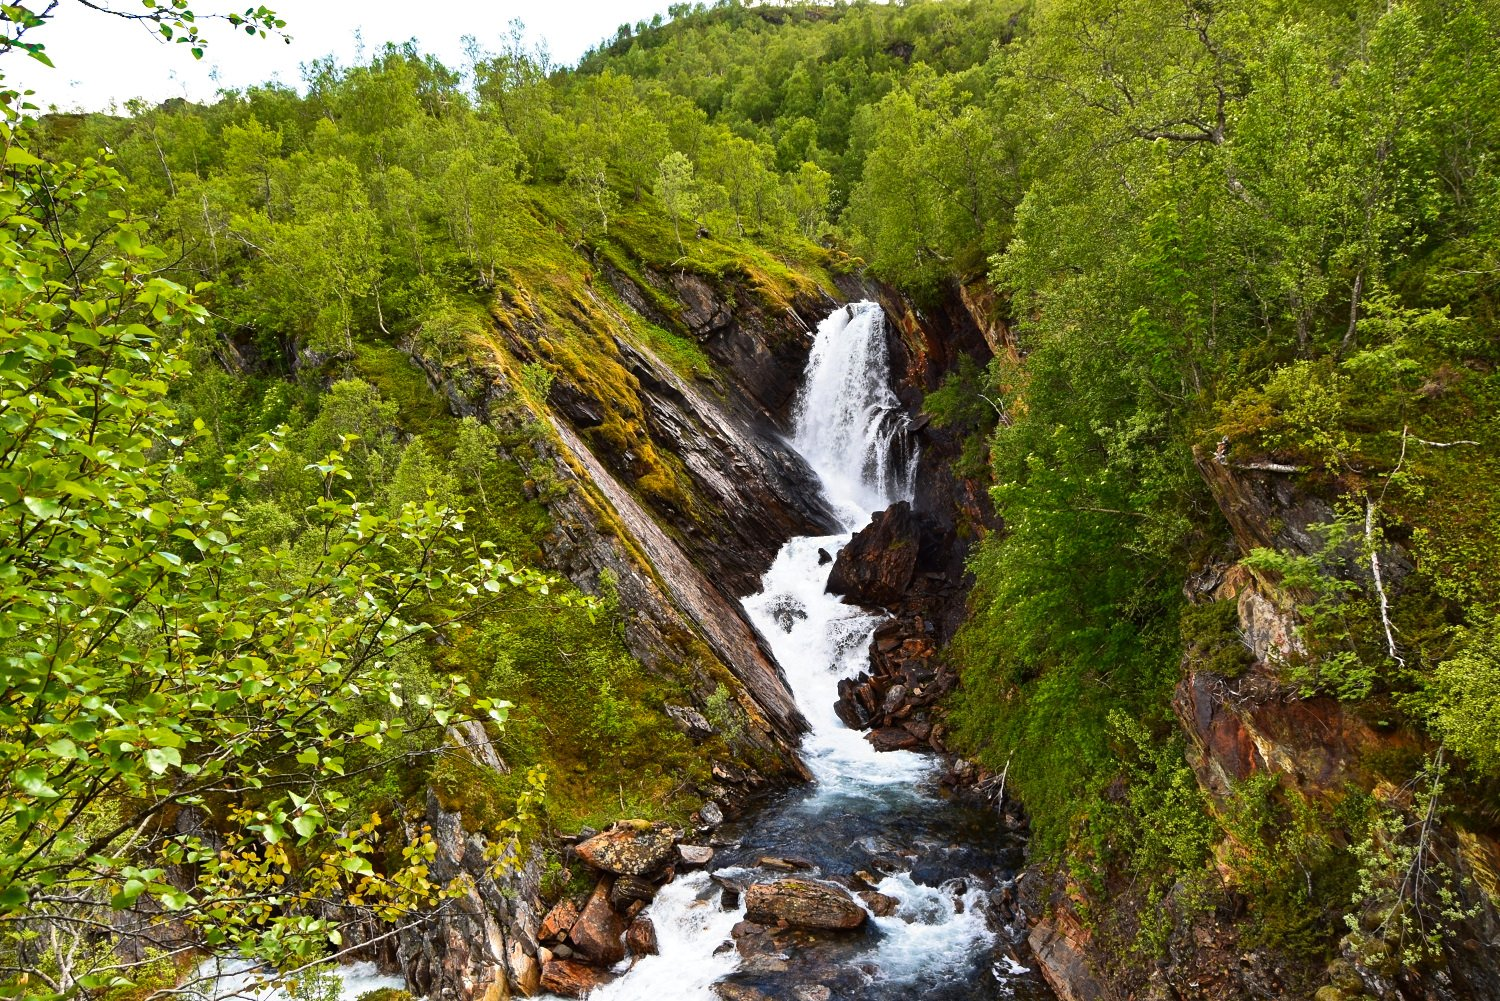 Waterfall in the forest of Valnesfjord